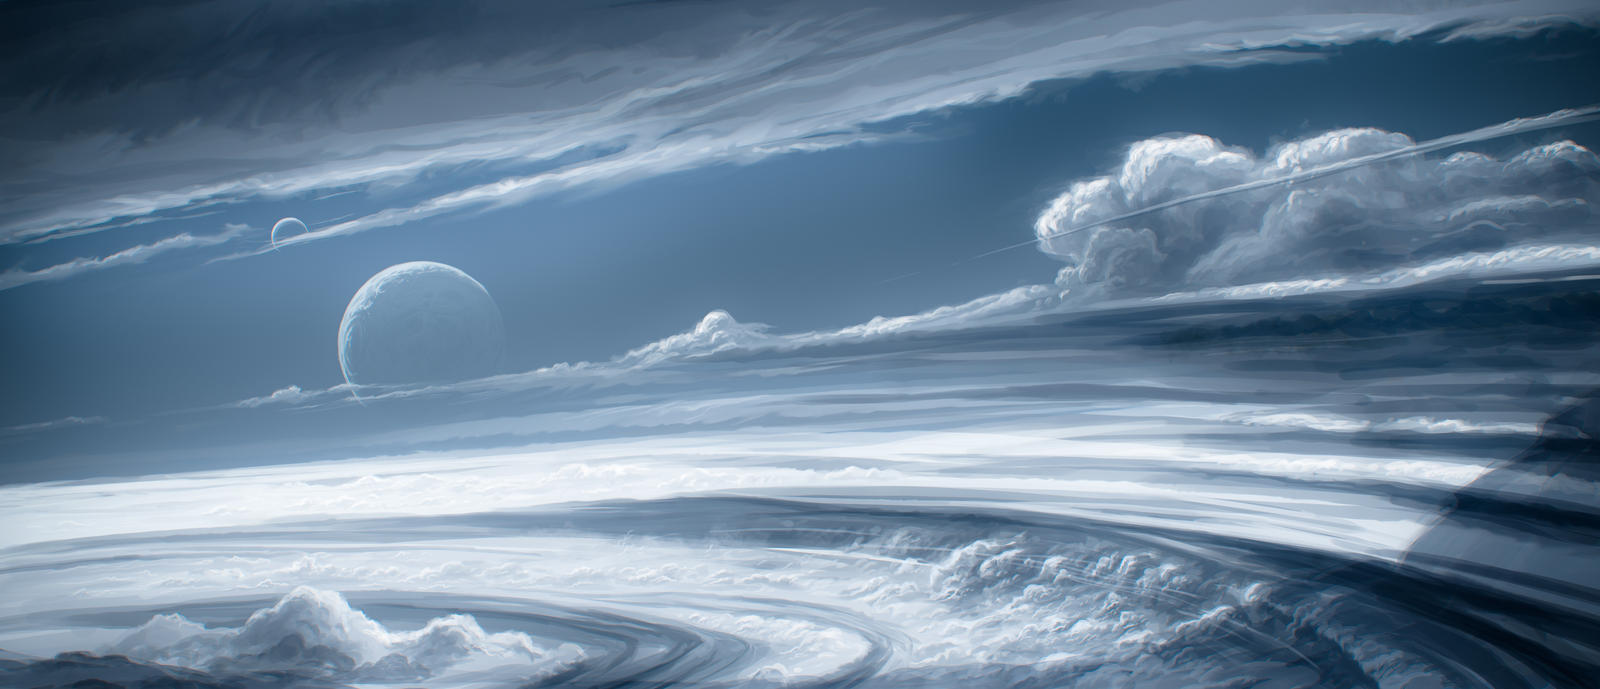 Fast skies background by JustV23